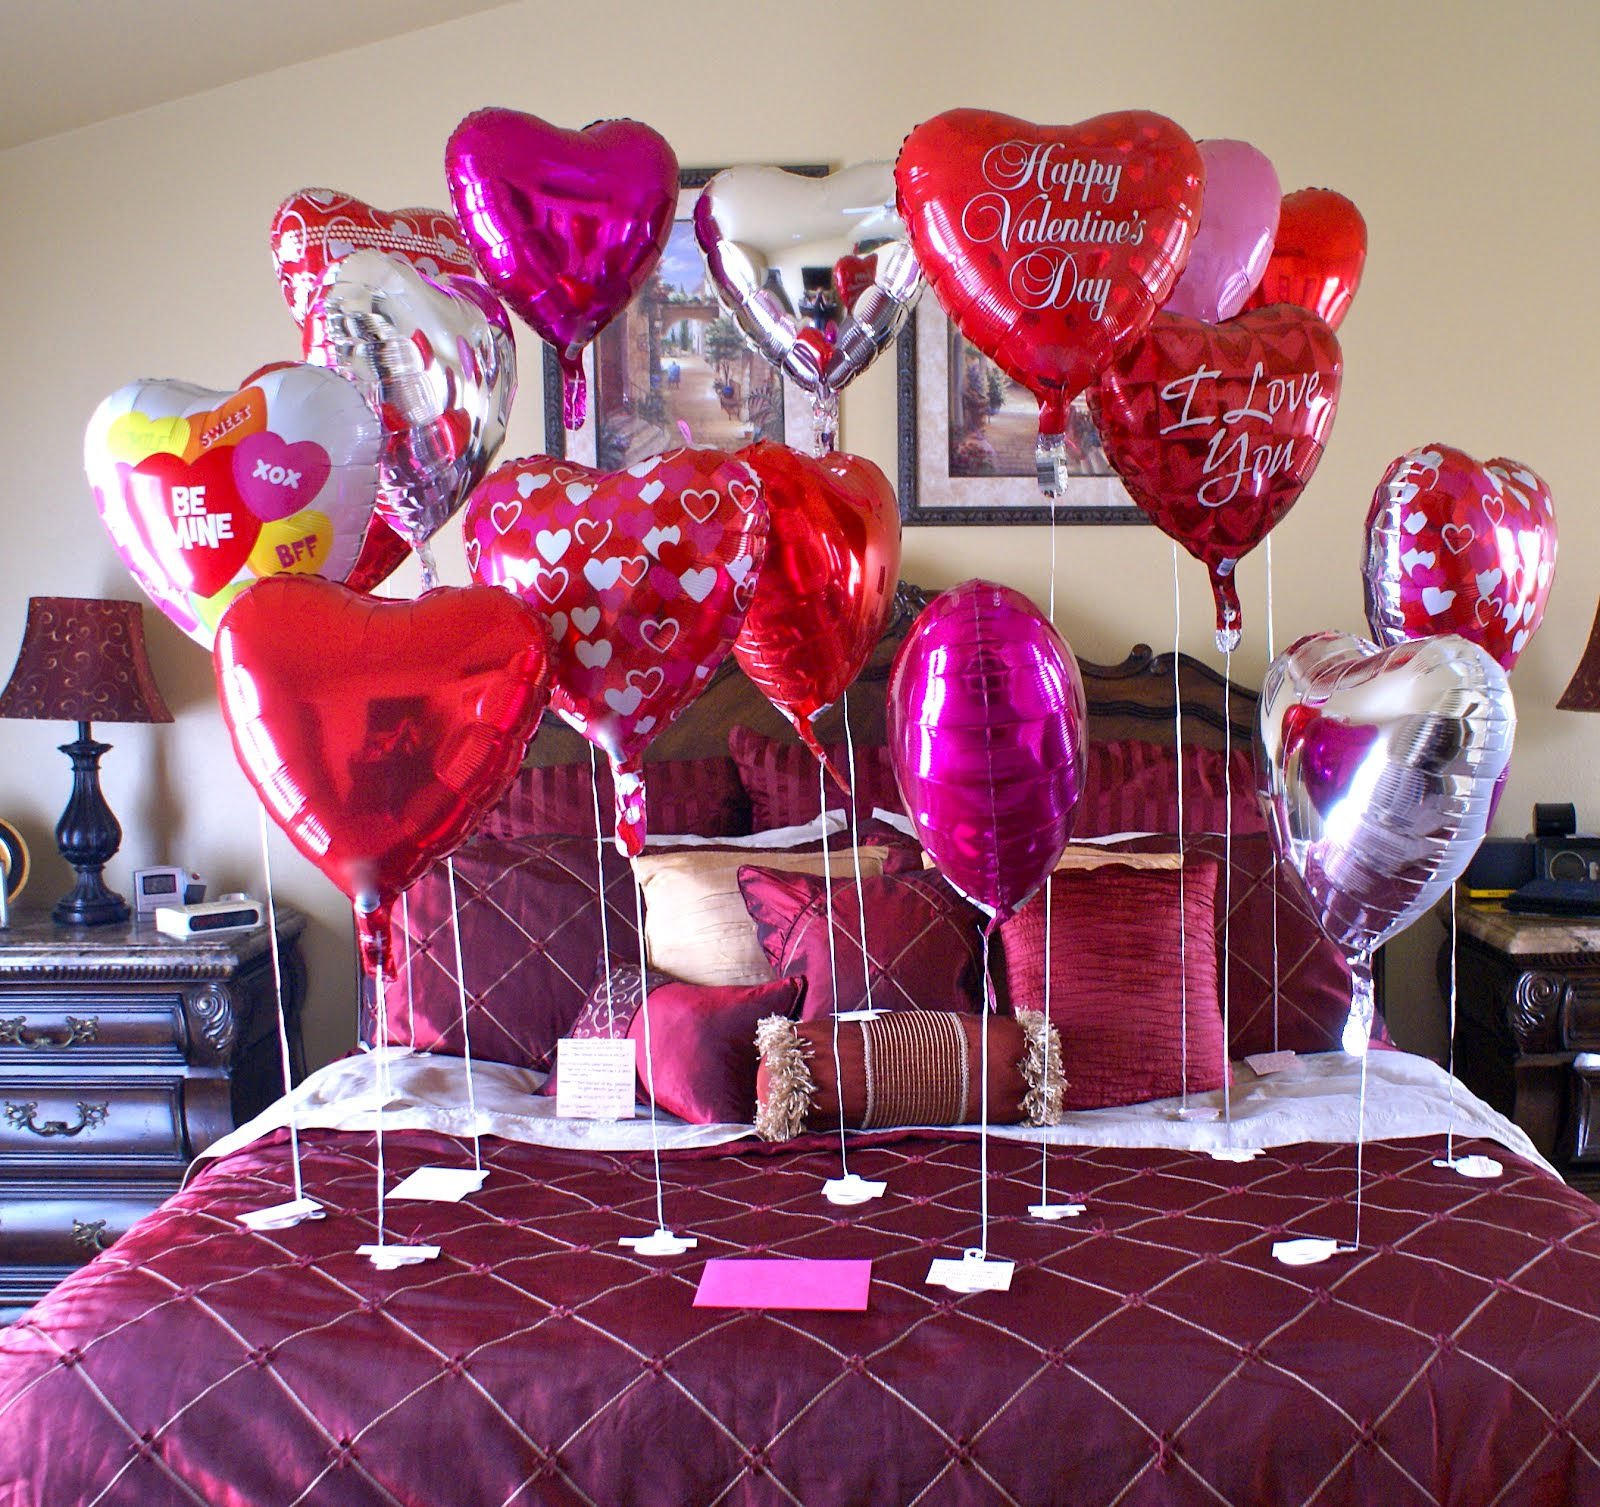 Balloons decorations ideas interior design styles for Decorate for valentines day